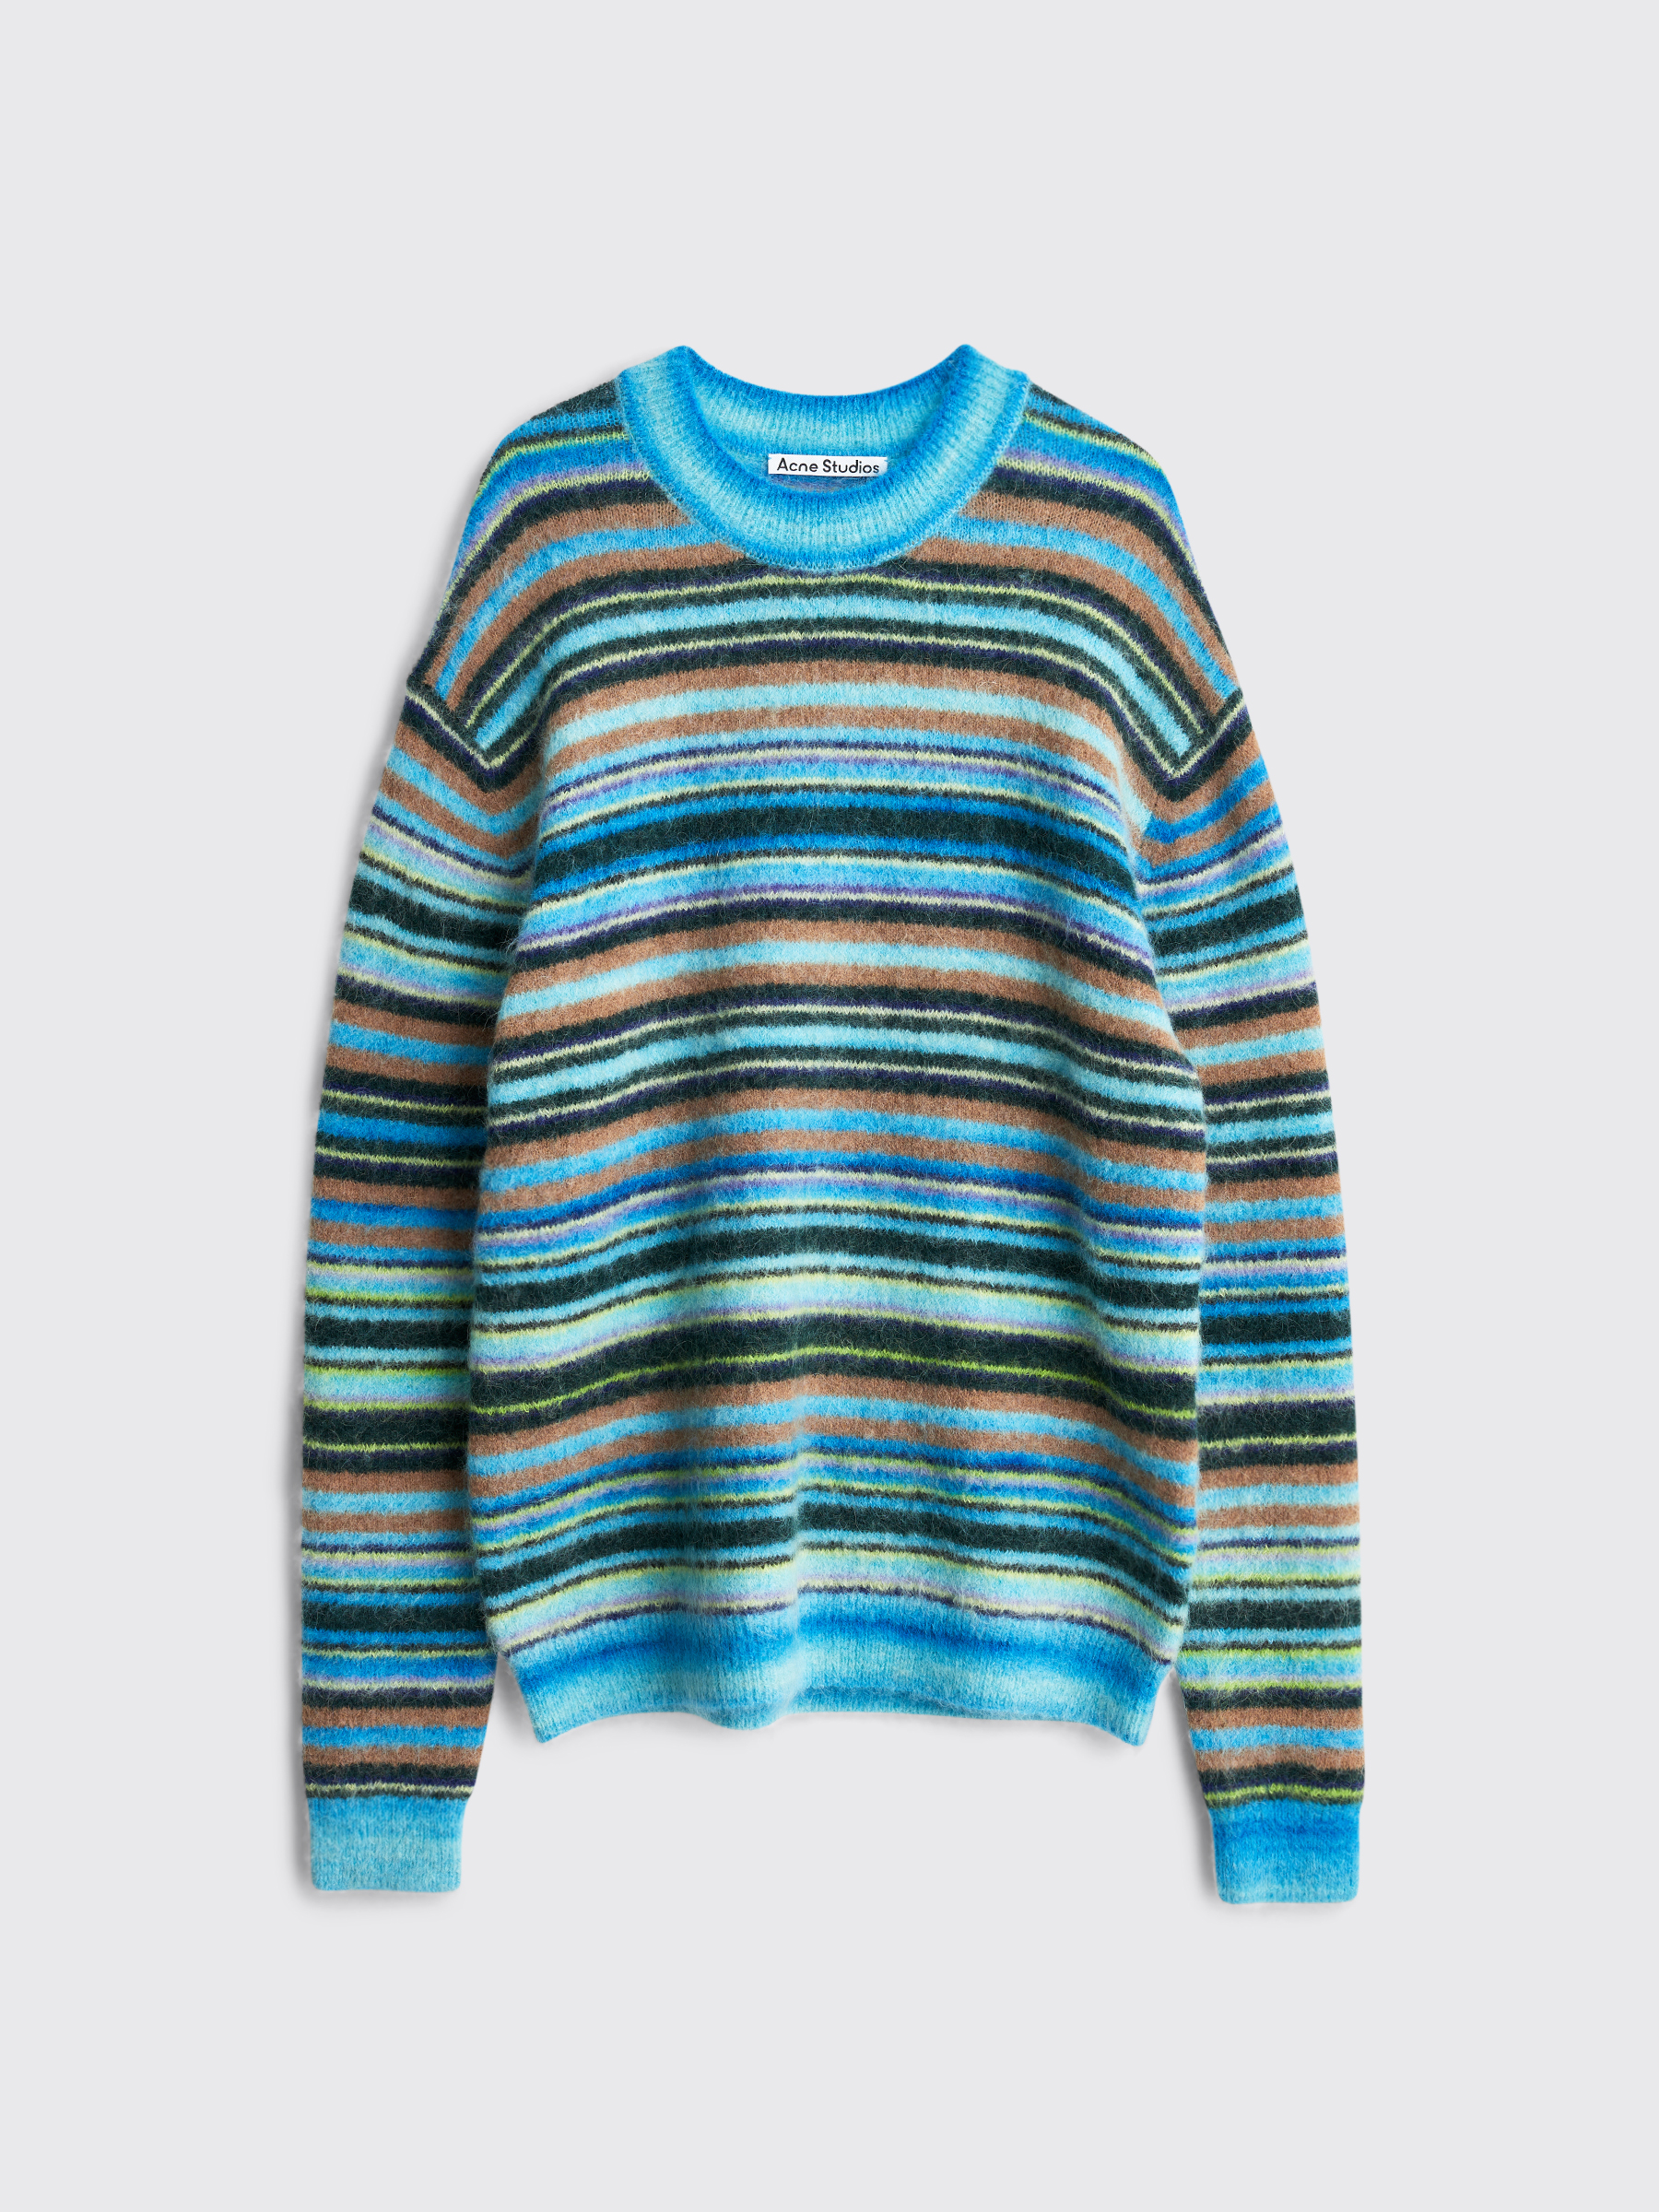 Tres Bien Acne Studios Nosti Sweater Stripe Azure Blue Light Blue